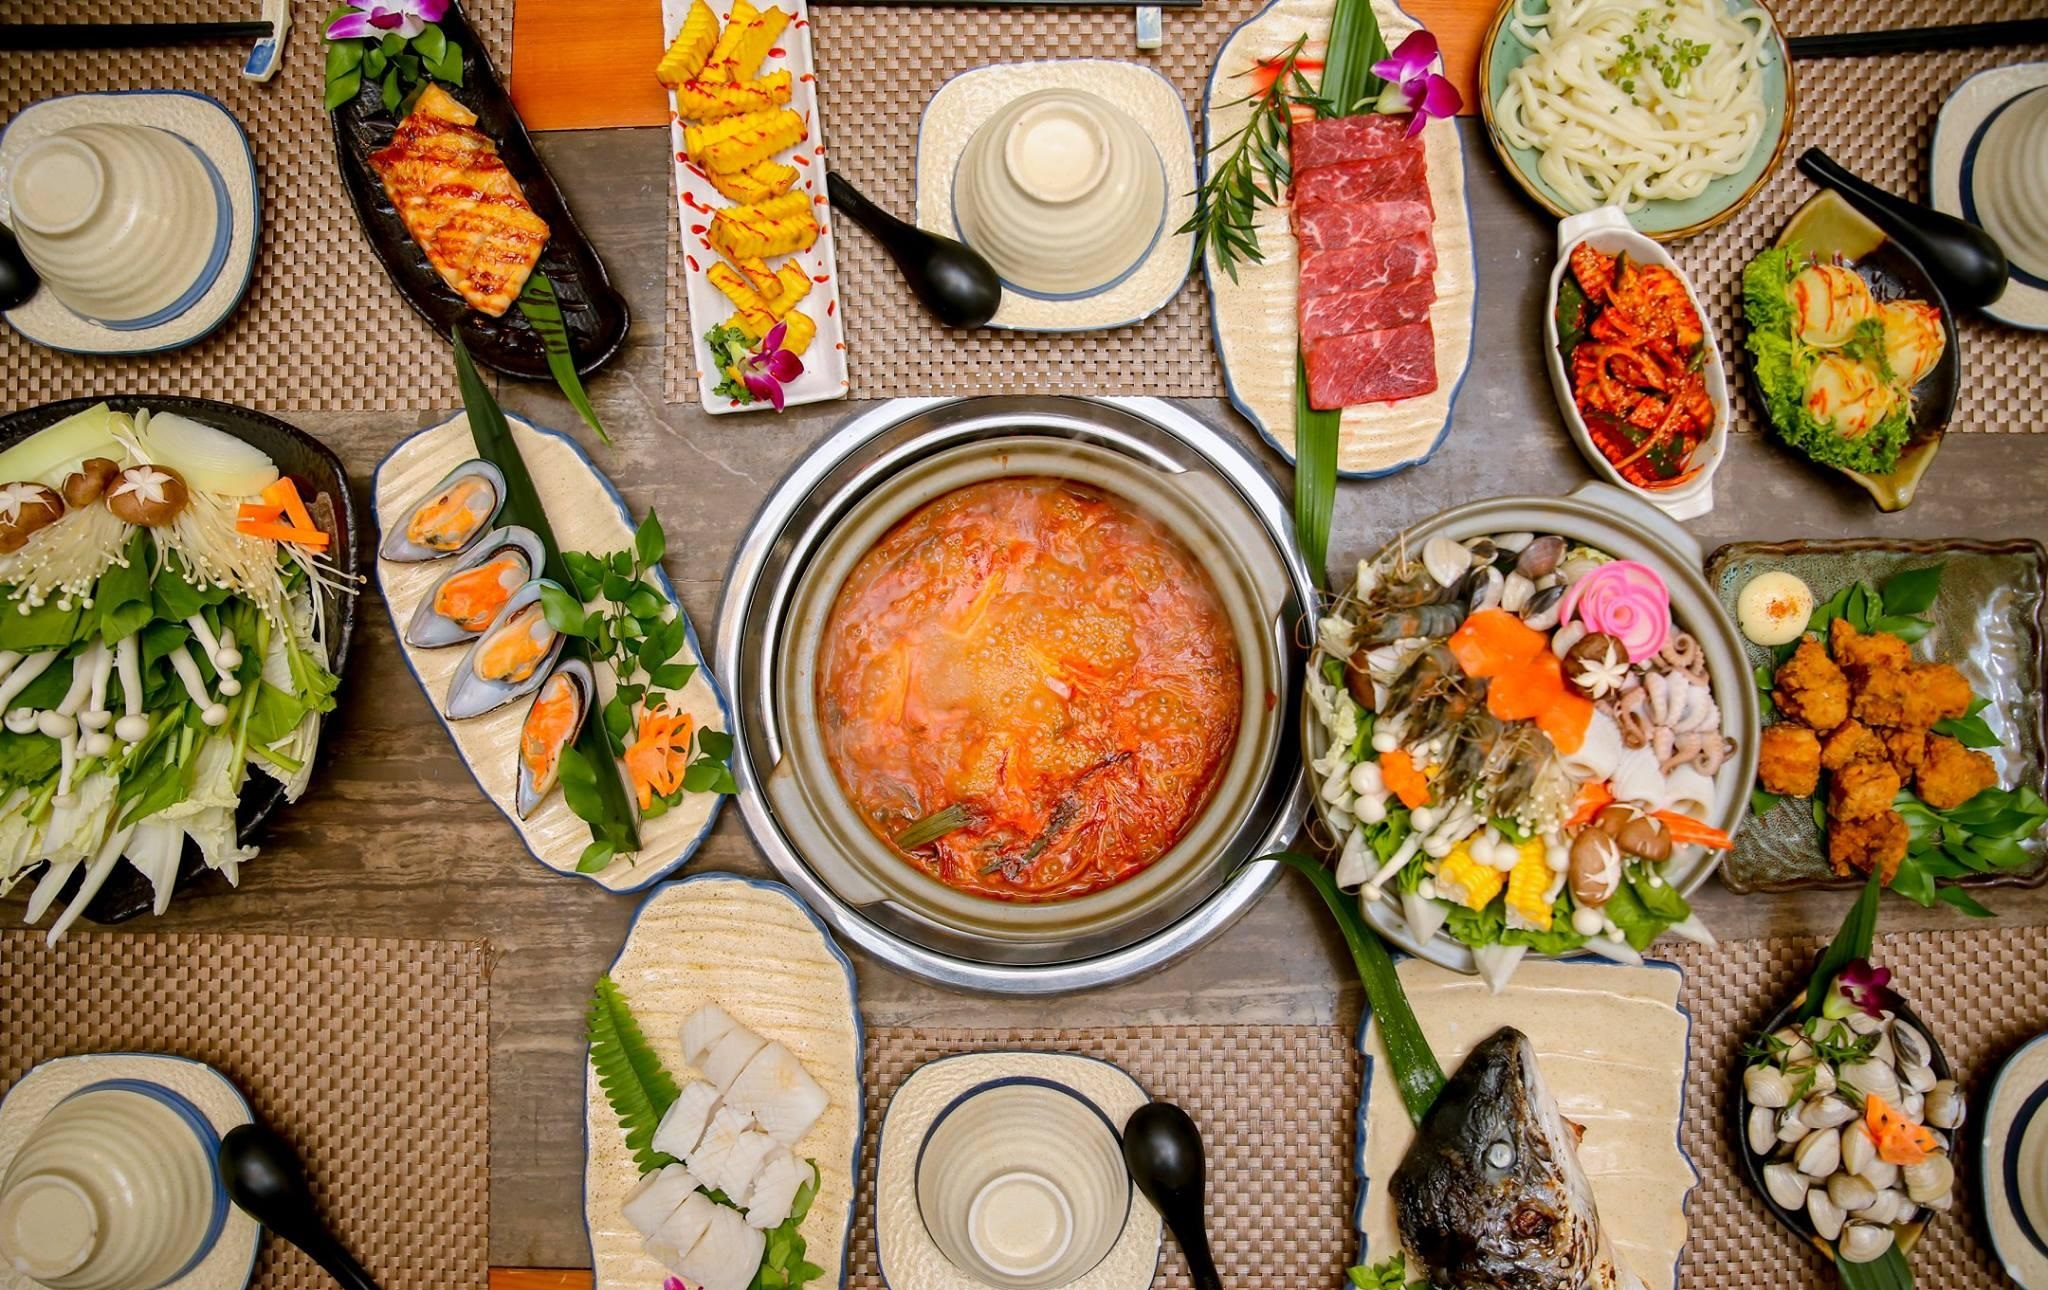 Sashimi BBQ Garden- Top 20 best restaurants you must give a try in Hanoi